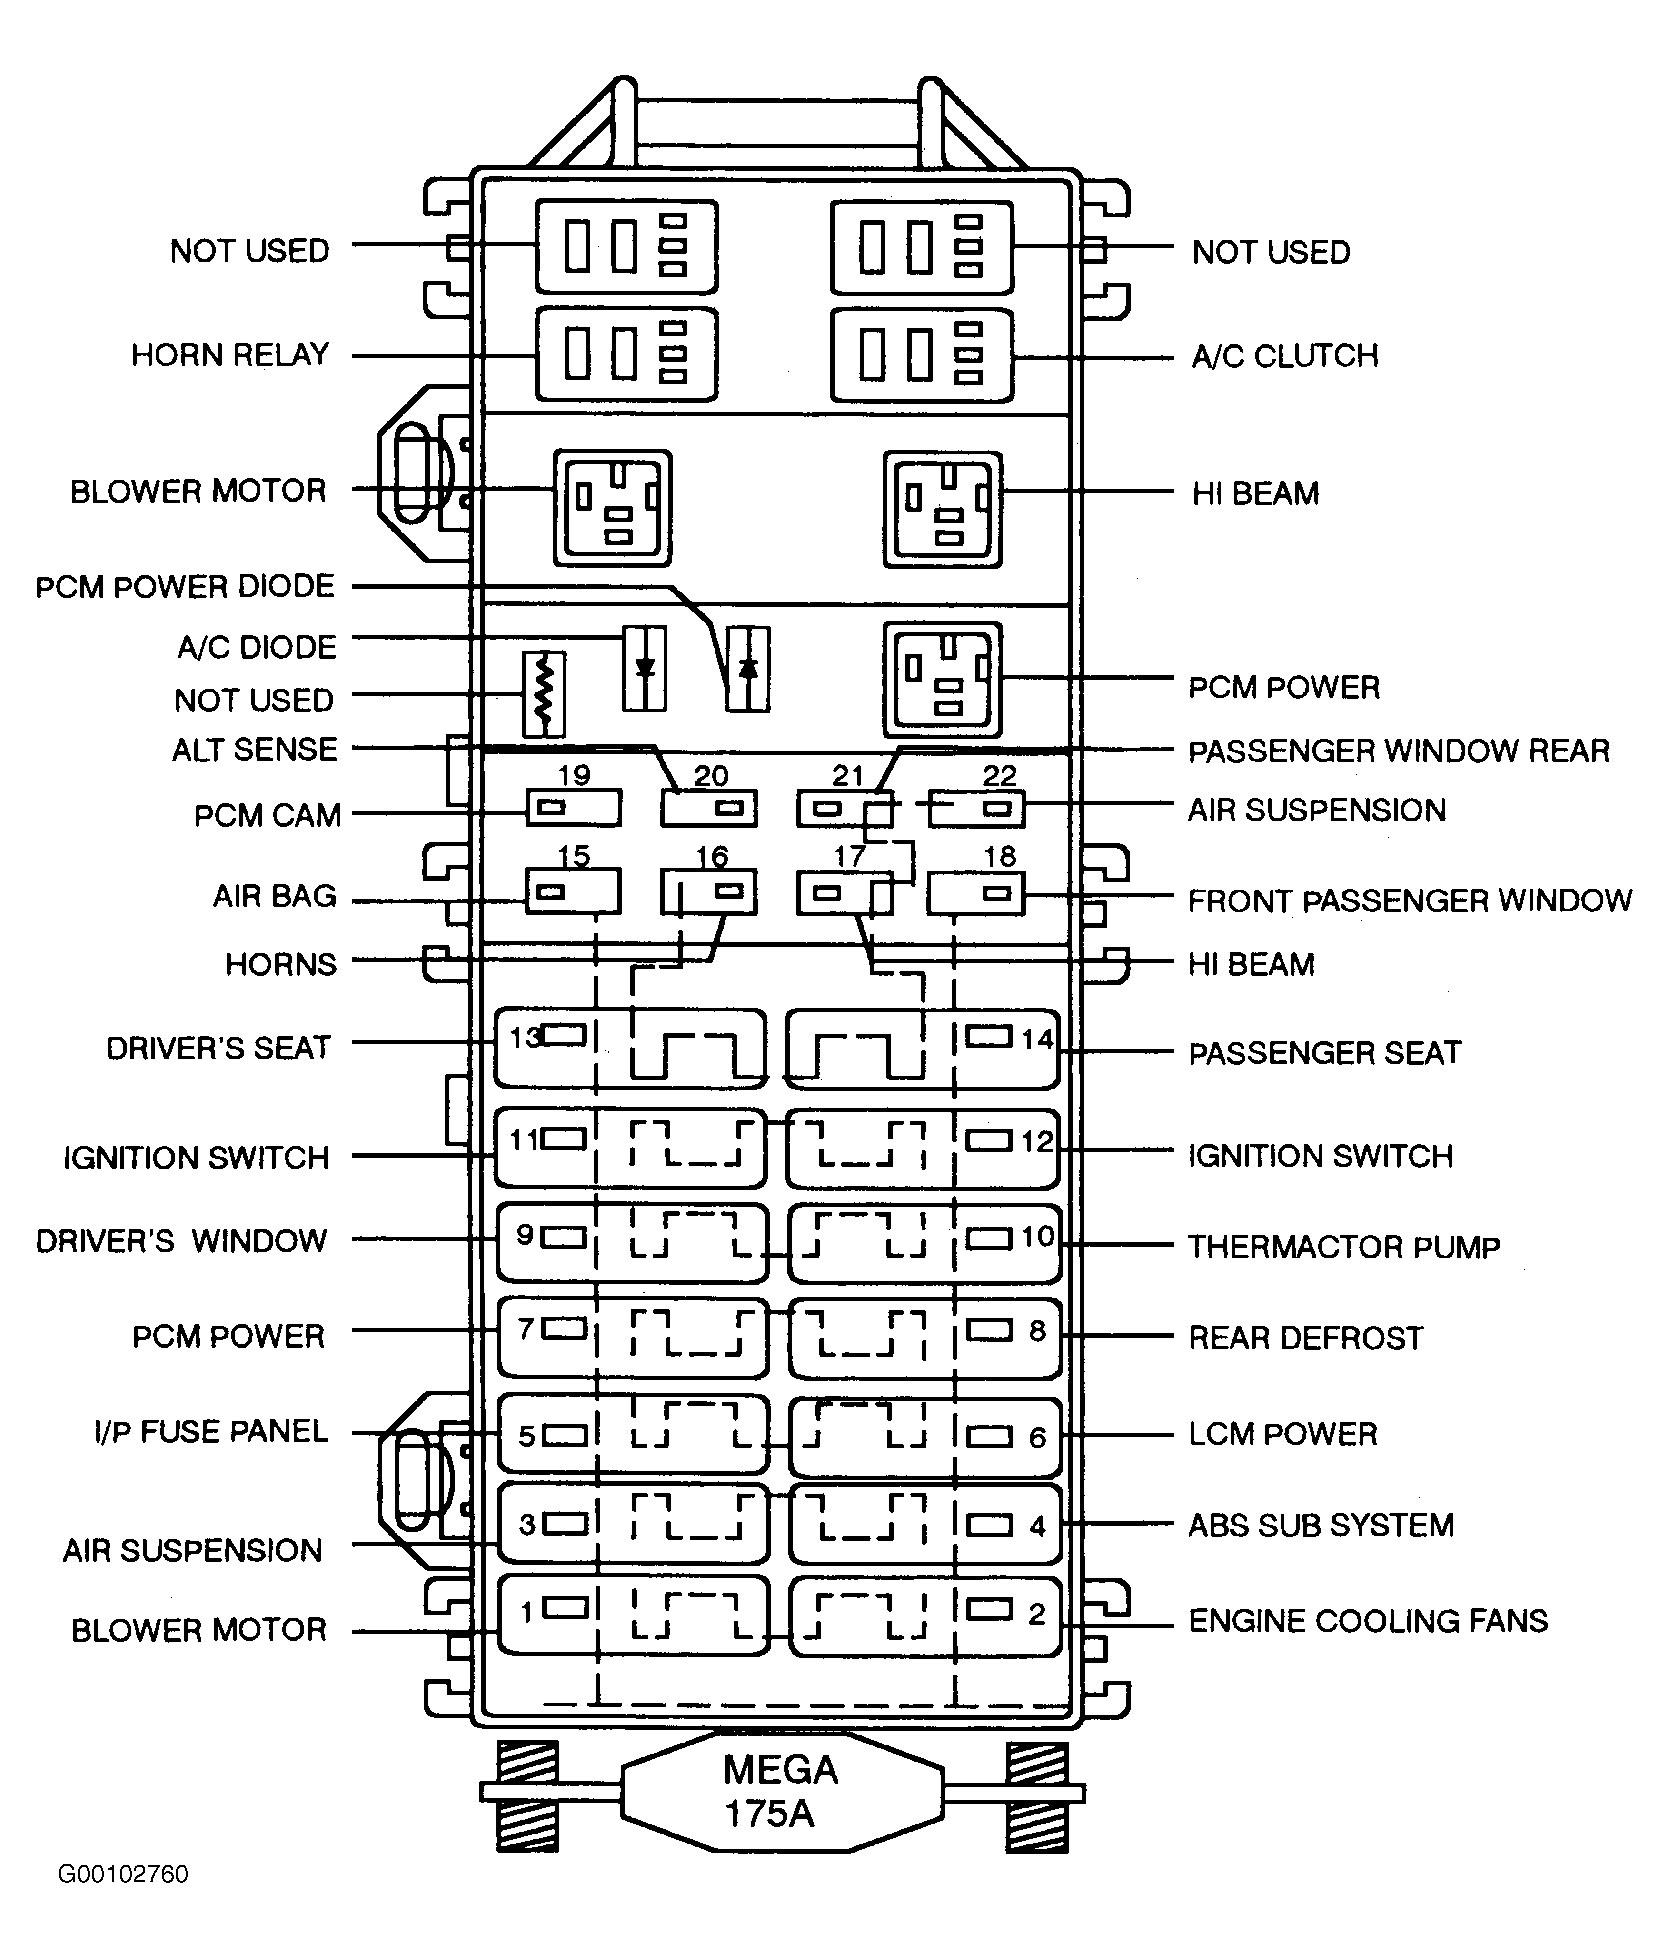 1998 Lincoln Fuse Diagram Starting Know About Wiring Diagram \u2022 1998  Chrysler Town & Country Fuse Box Diagram 1998 Lincoln Continental Fuse Box  Diagram